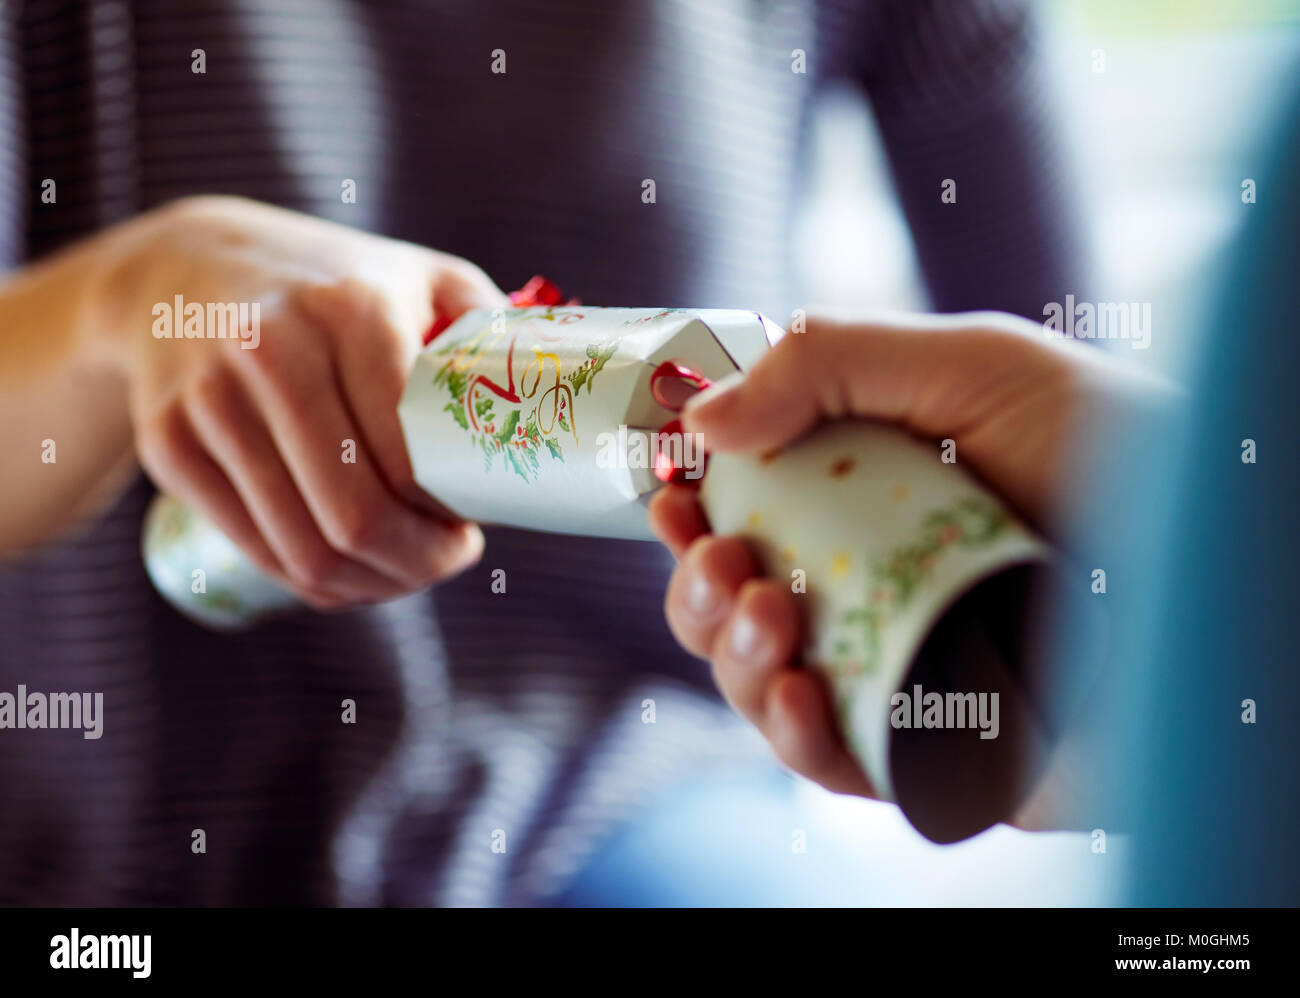 Two people pulling a Christmas cracker - Stock Image